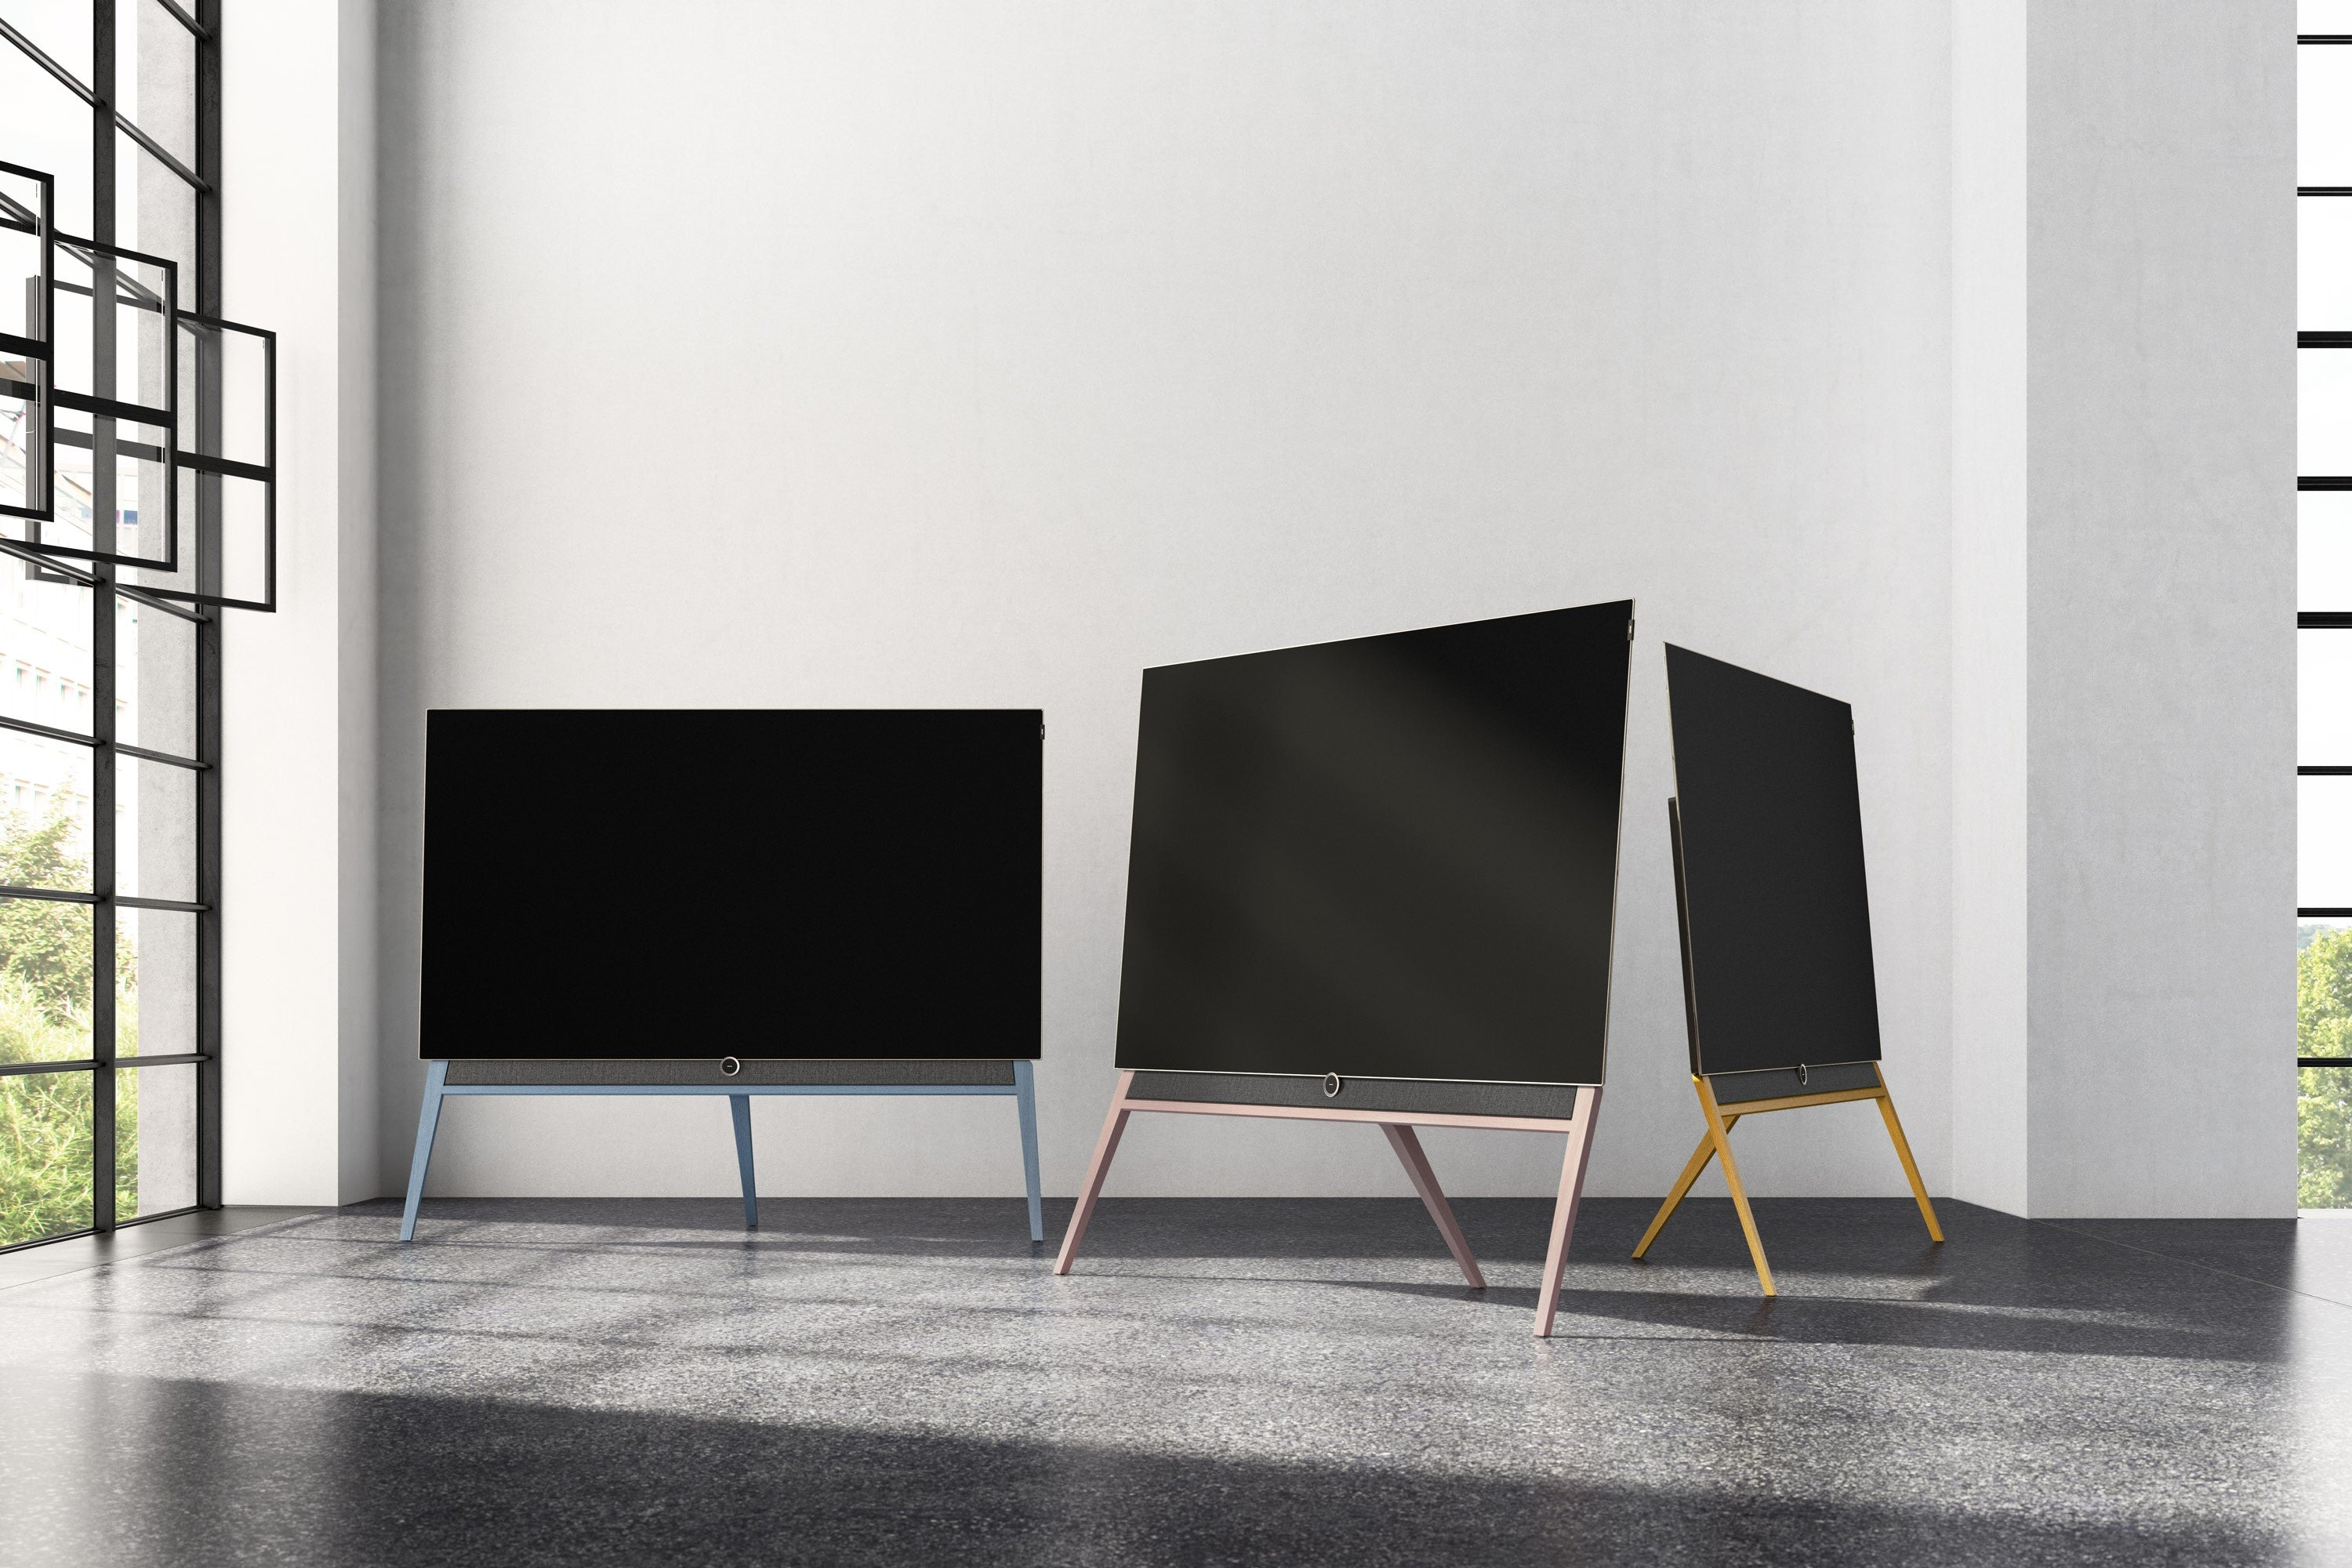 Loewe bild 5 OLED Colour Code Technology design by Bodo Sperlein